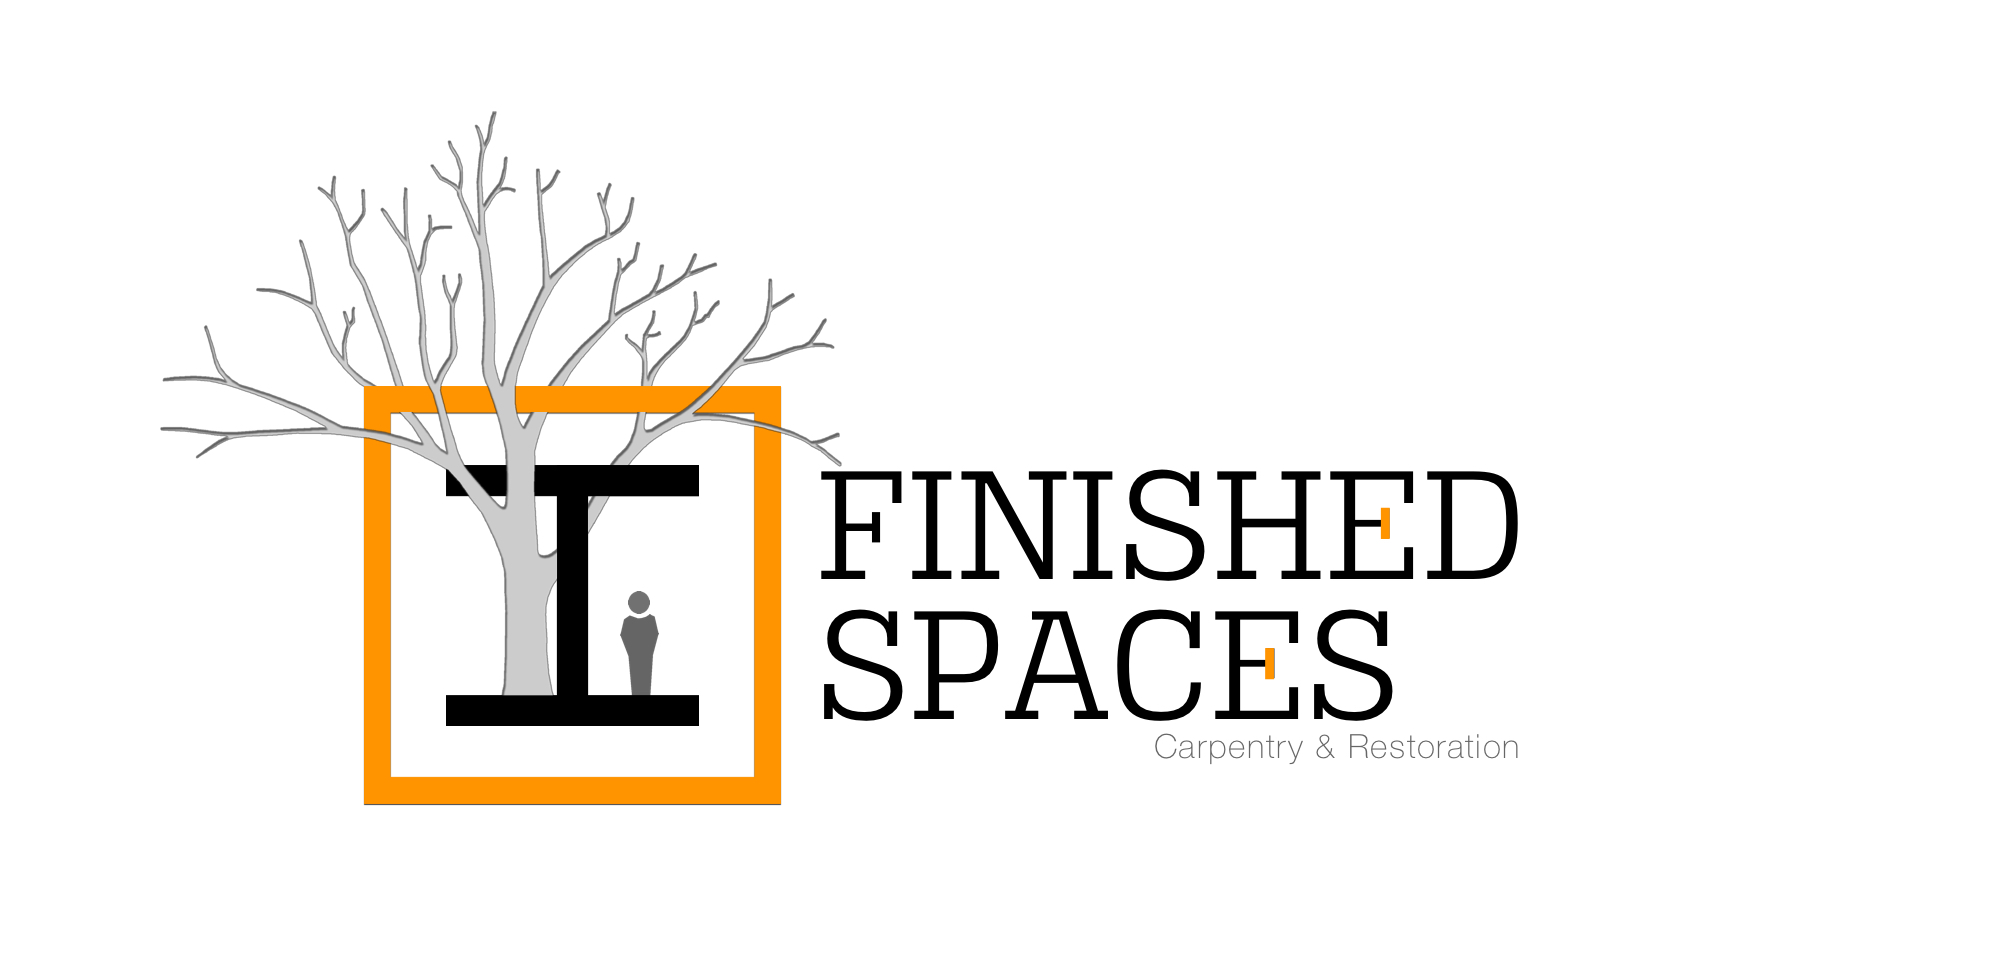 Finished Spaces Logo & Name 29x14.jpg